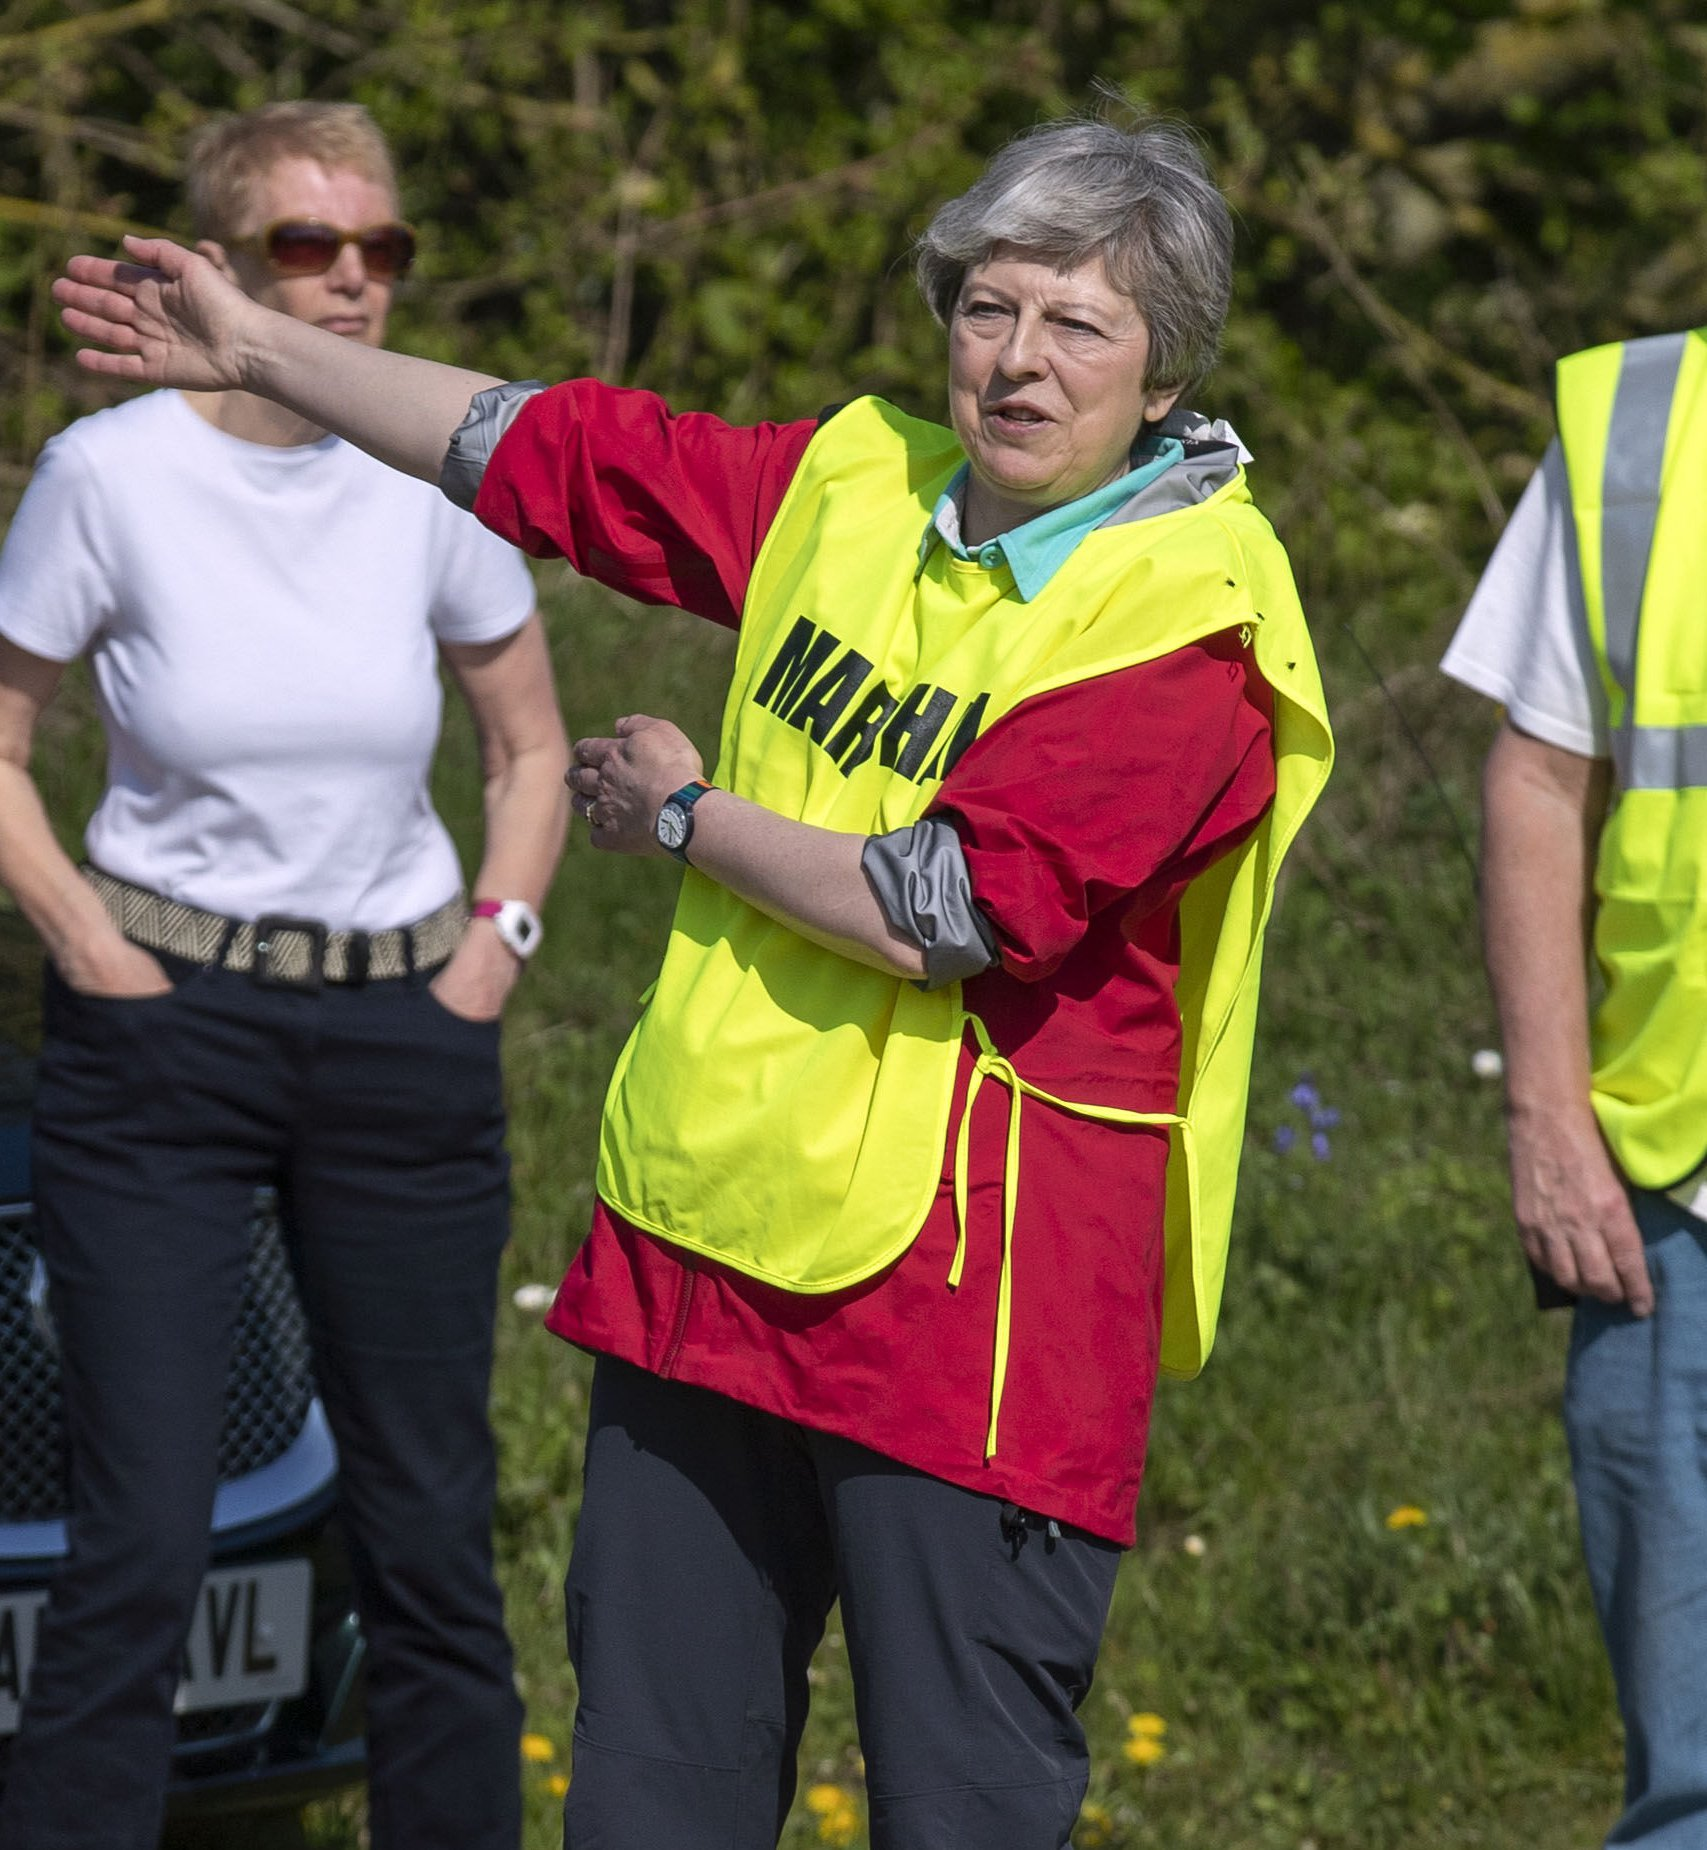 Prime Minister Theresa May acts as a marshal during the Maidenhead Easter 10 race in maidenhead. PRESS ASSOCIATION Photo. Picture date: Friday April 19, 2019. Photo credit should read: Steve Parsons/PA Wire